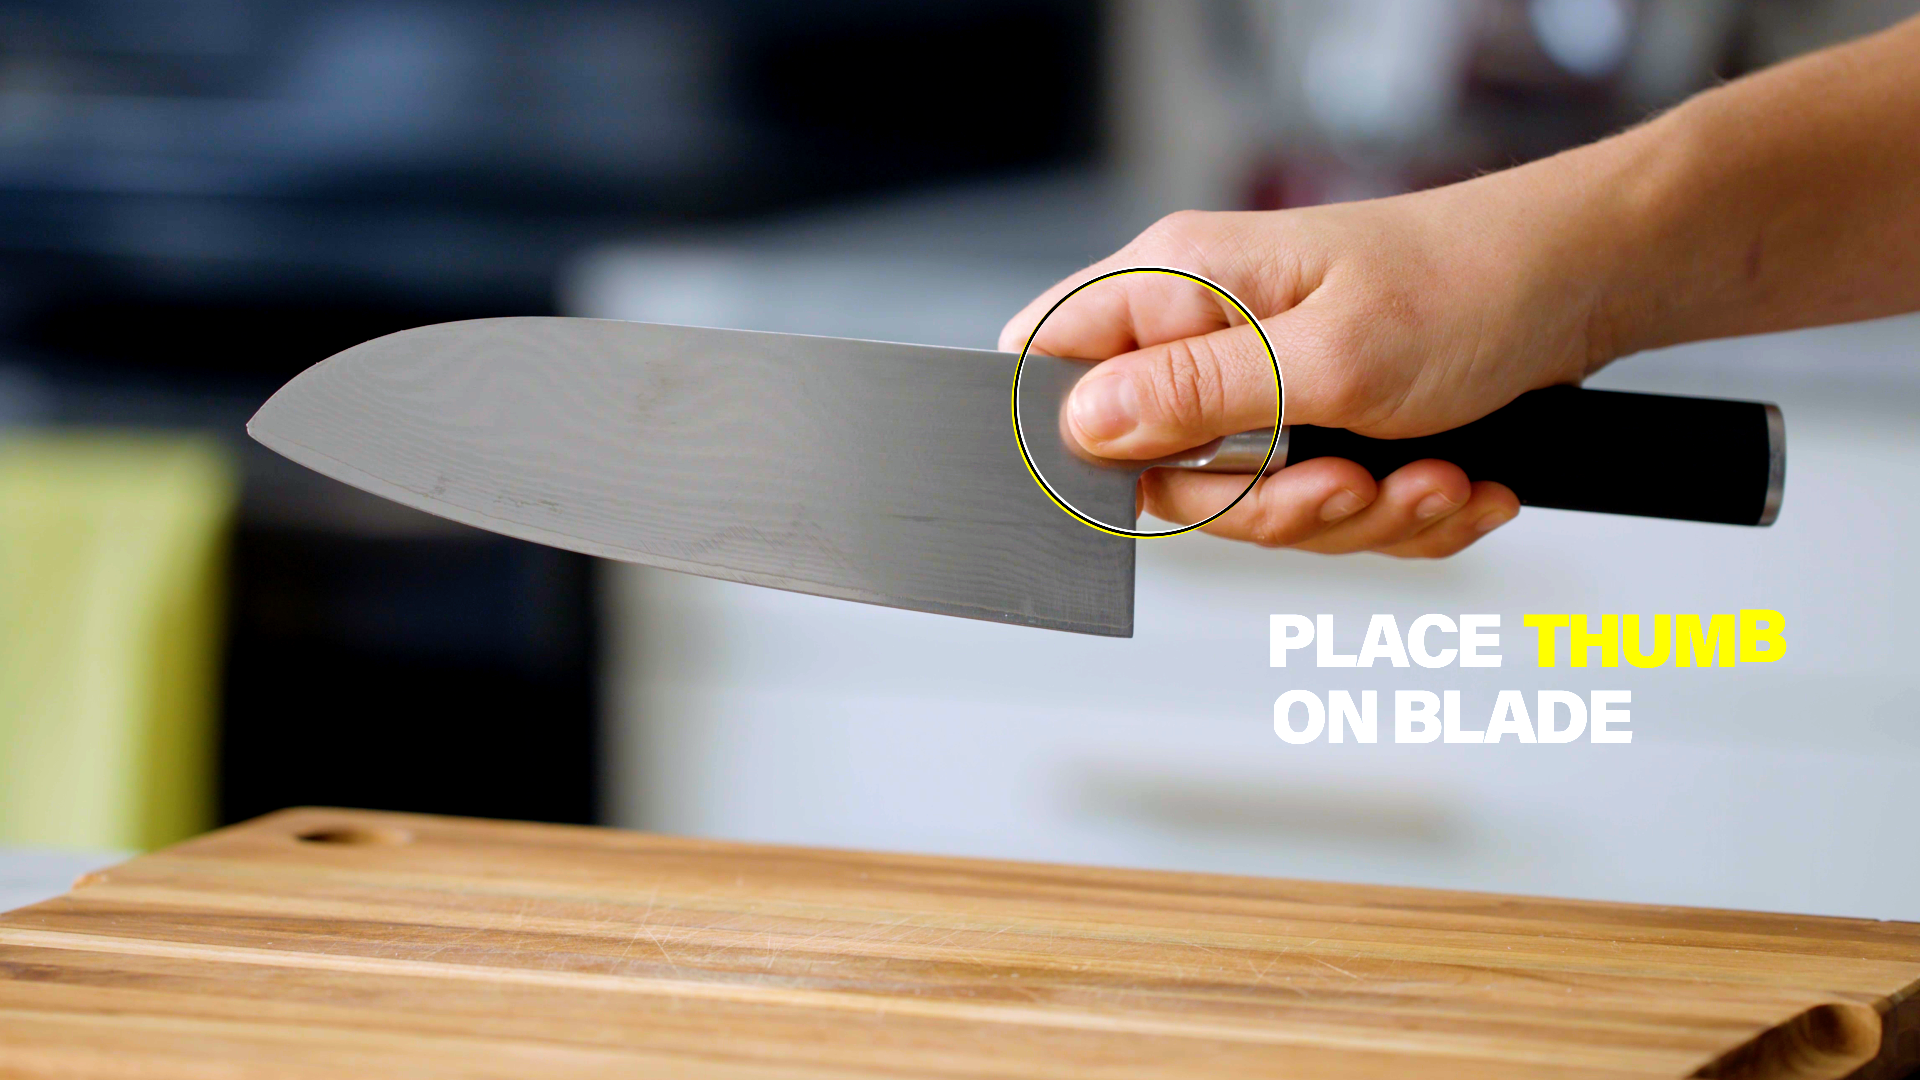 How To Learn Basic Knife Skills Kitchn Download transparent csgo knife png for free on pngkey.com. how to learn basic knife skills kitchn